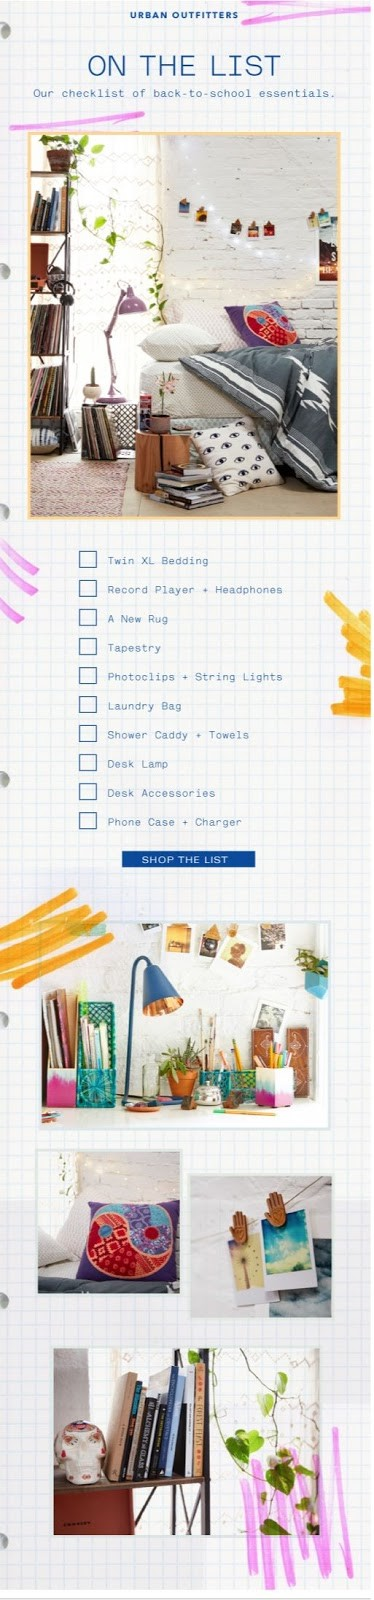 email newsletter template Urban Outfitters